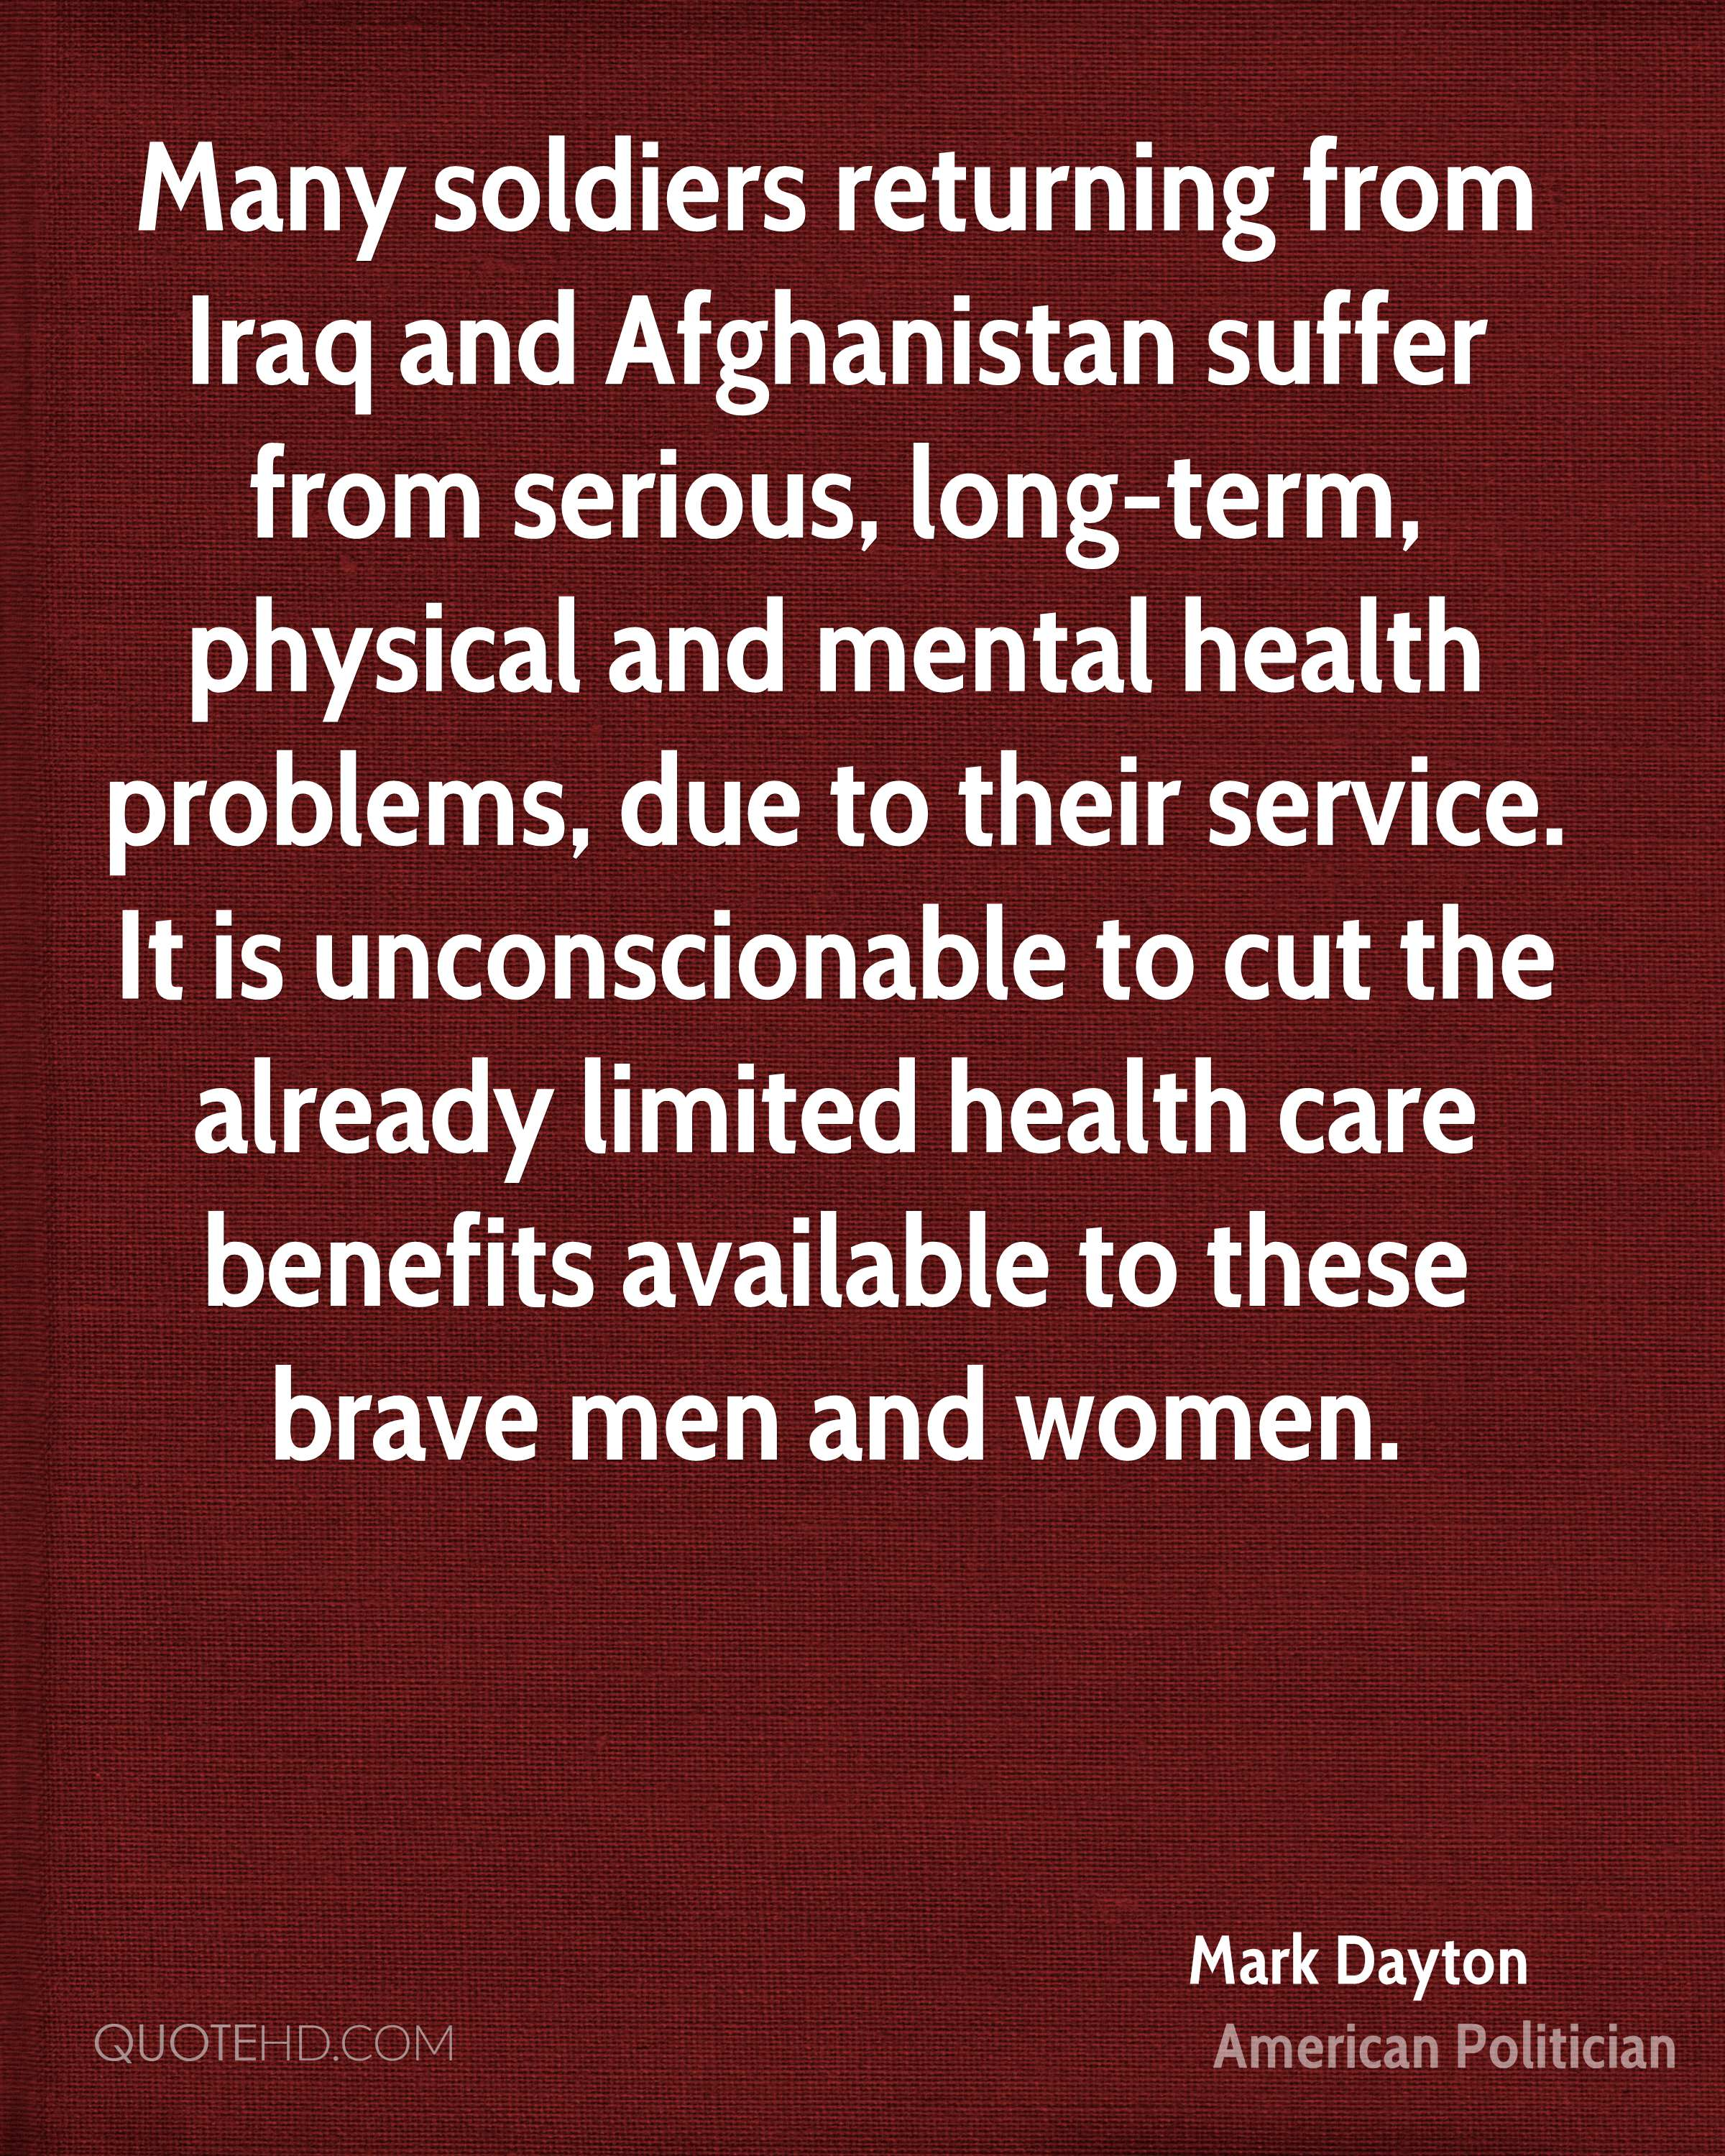 Many soldiers returning from Iraq and Afghanistan suffer from serious, long-term, physical and mental health problems, due to their service. It is unconscionable to cut the already limited health care benefits available to these brave men and women.